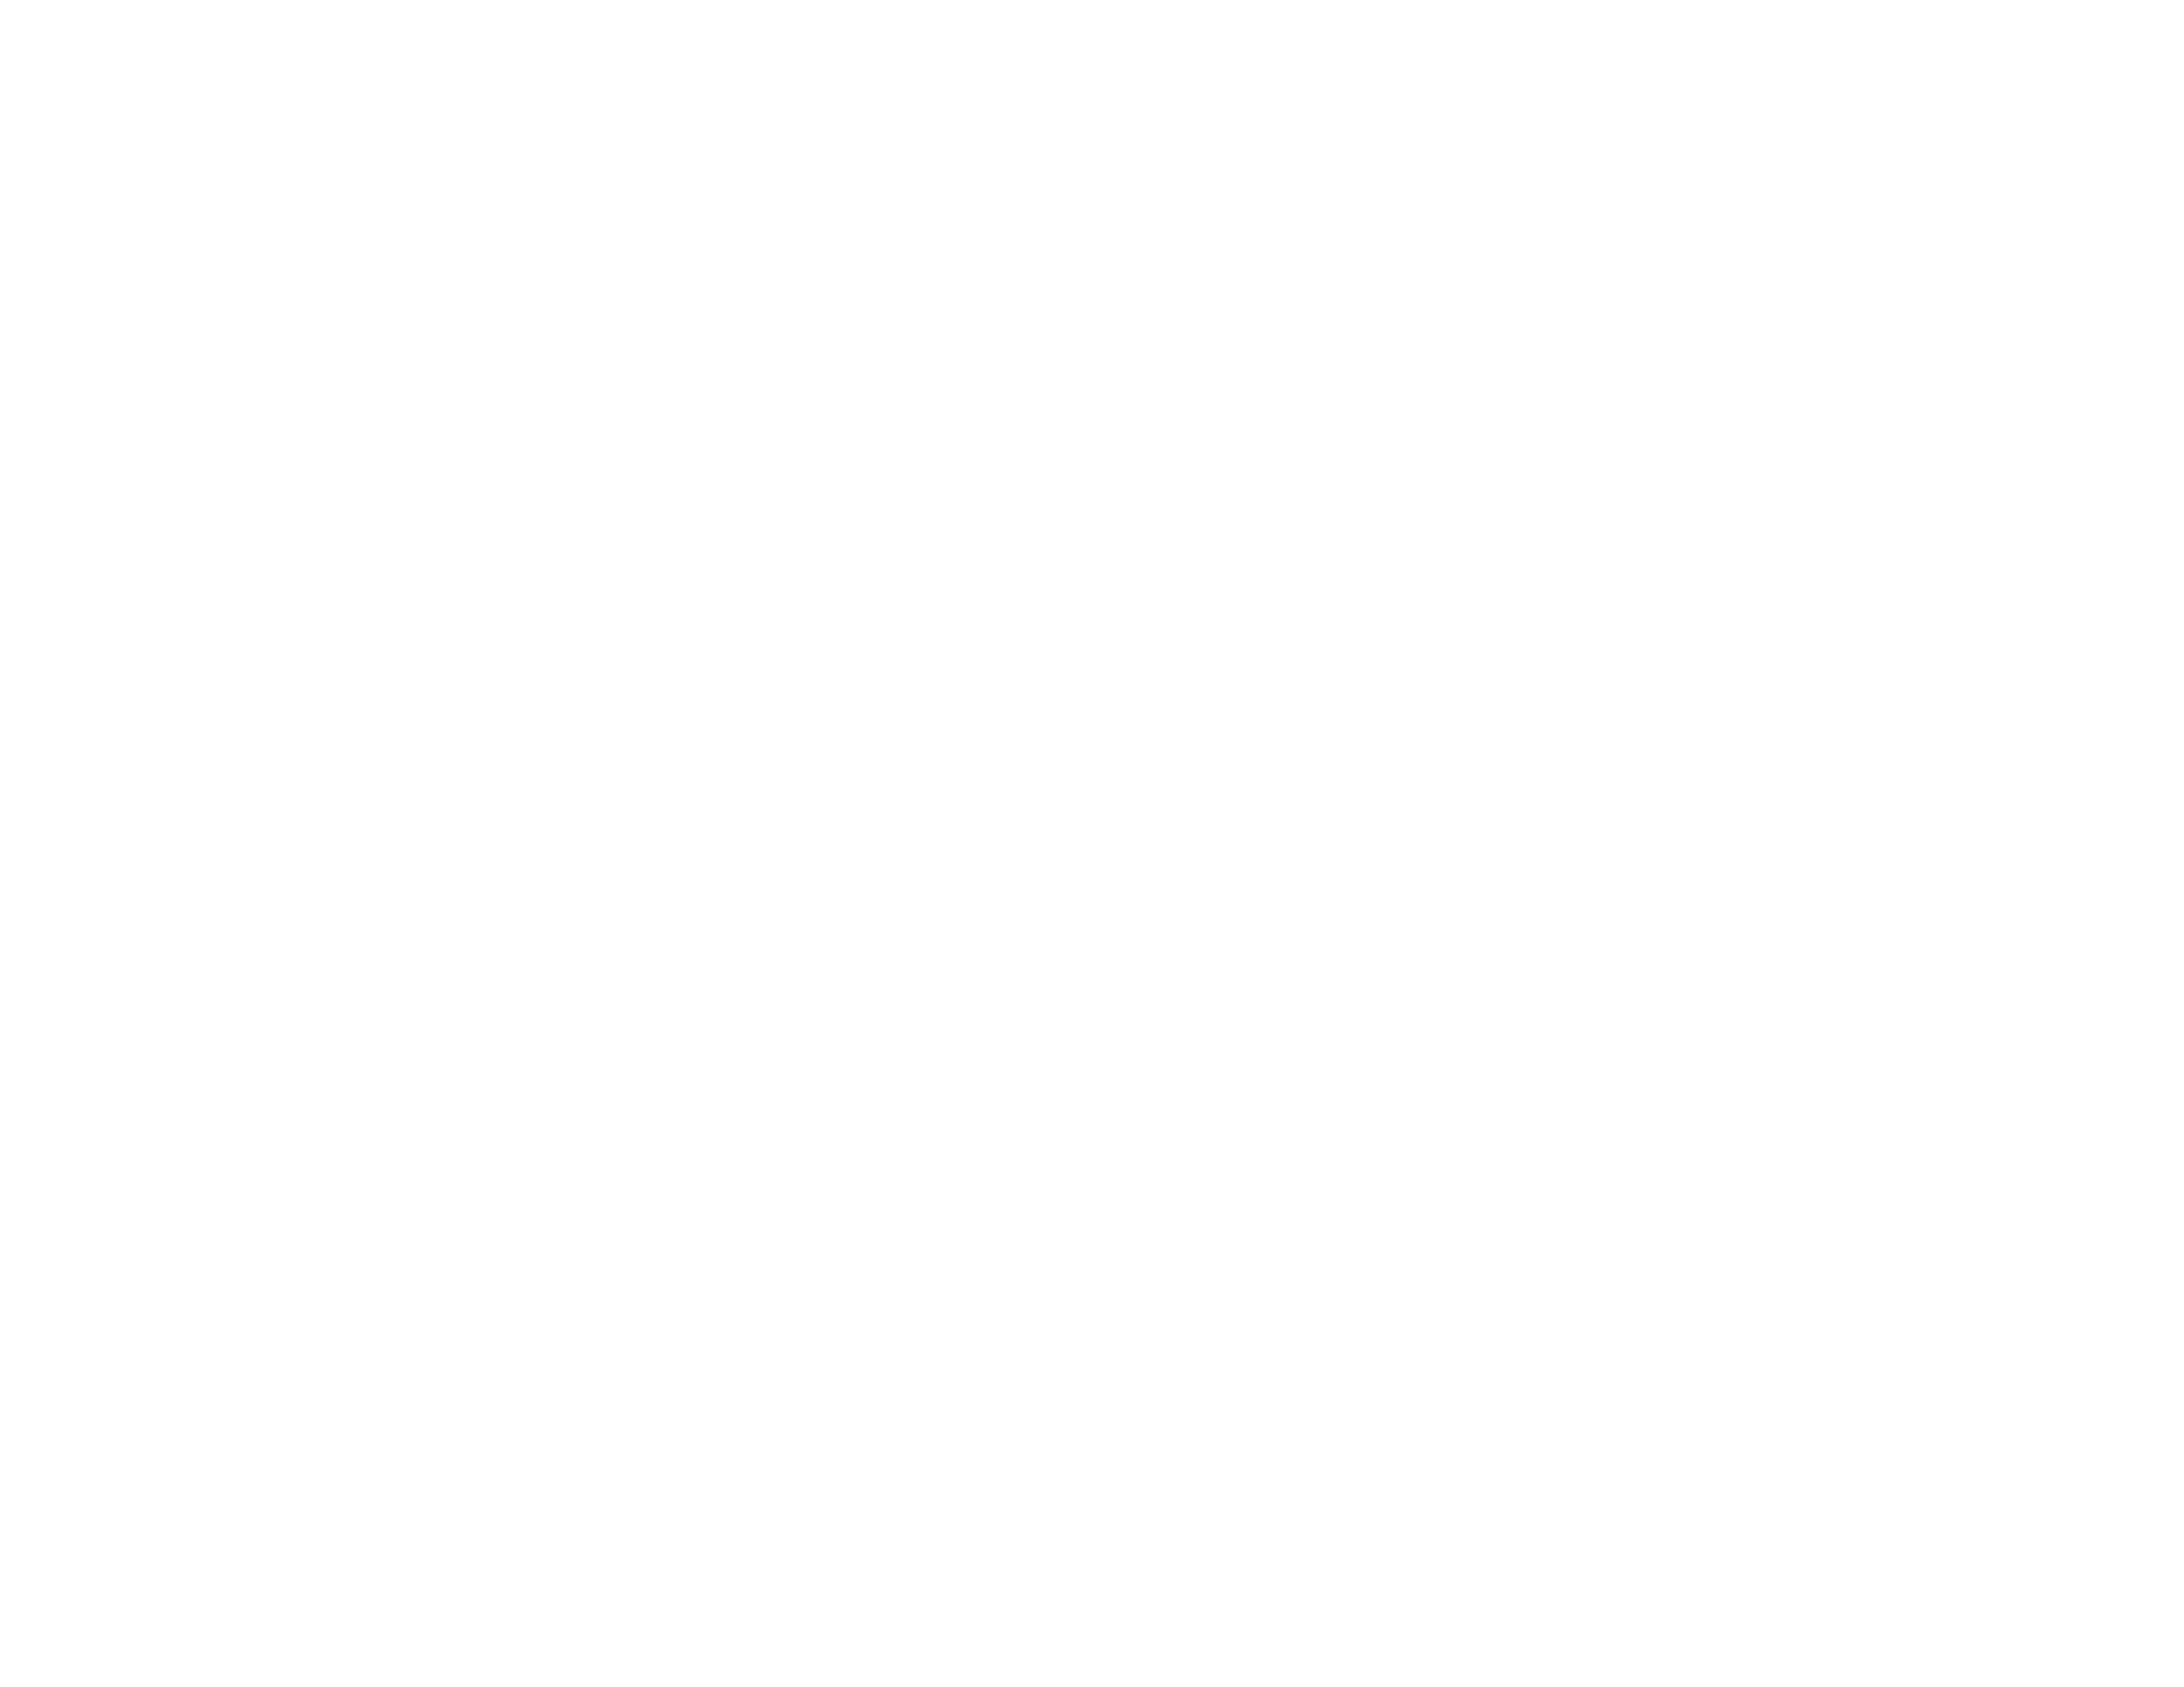 Tomball Event Center